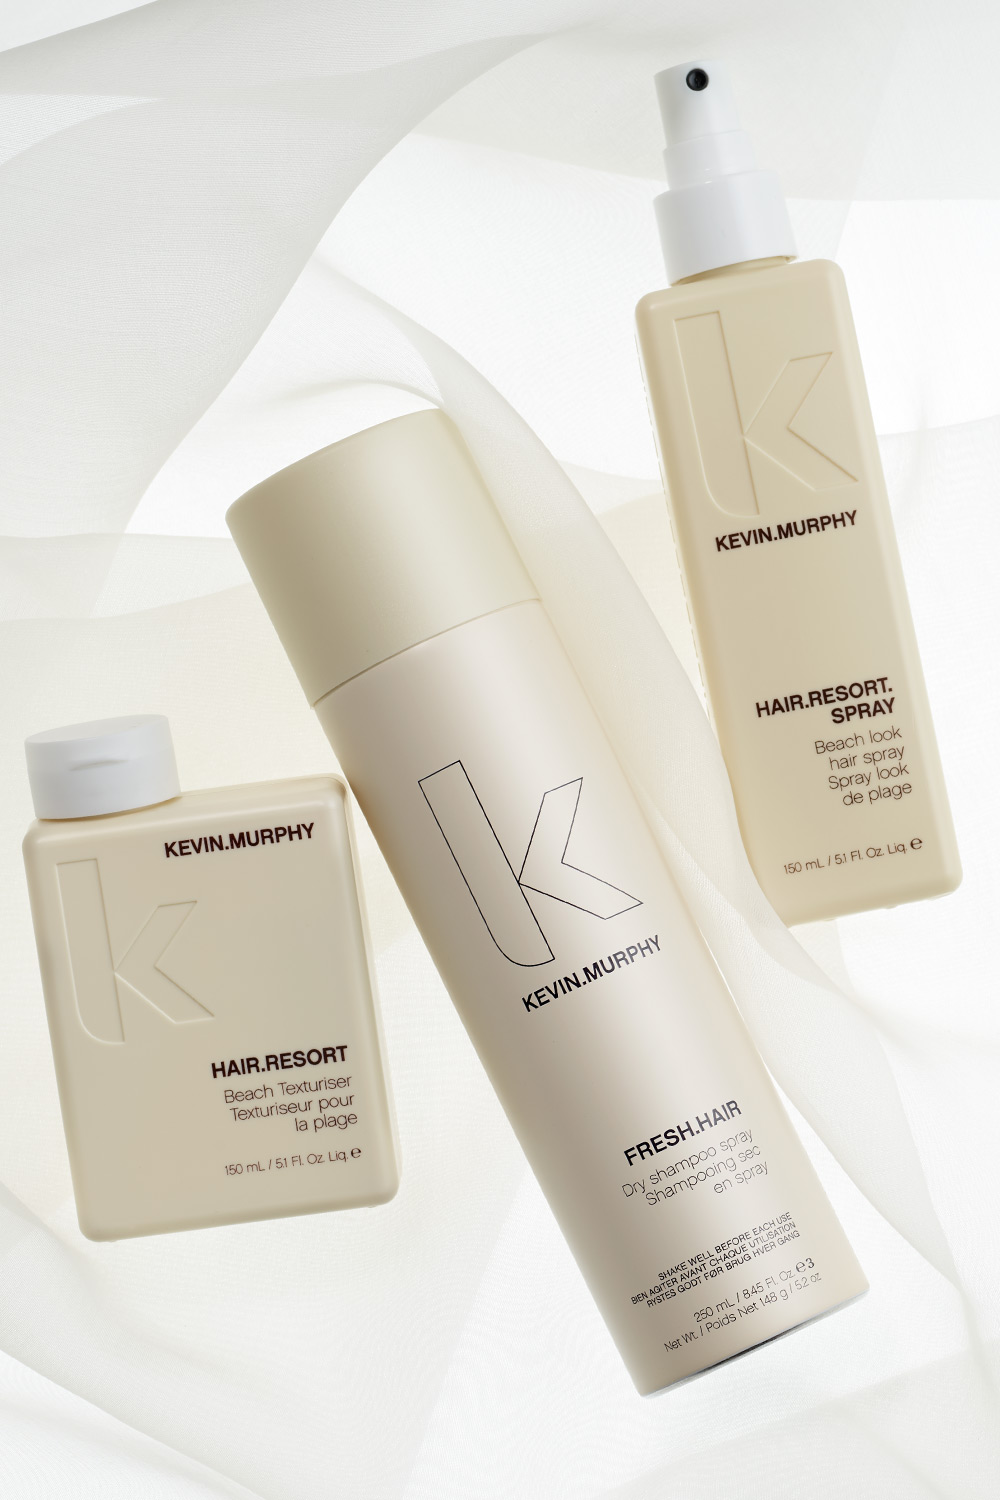 Texture products